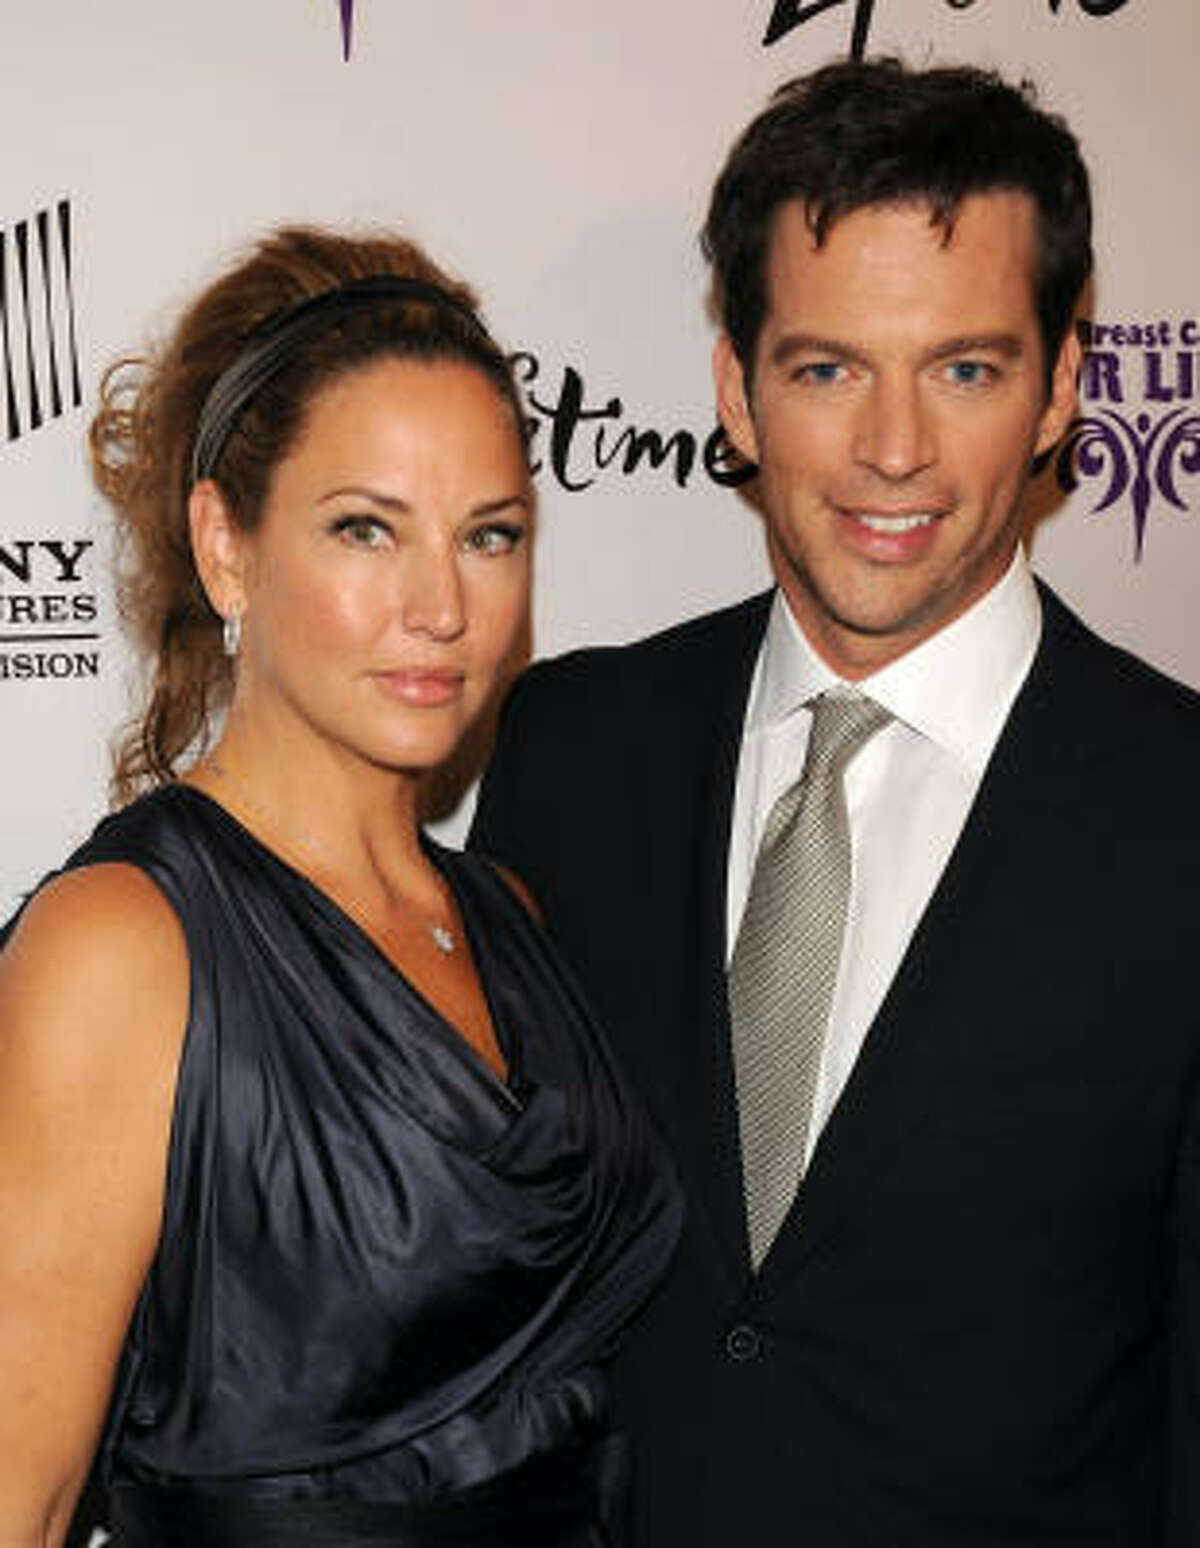 Jill Goodacre has three daughters with husband Harry Connick Jr.